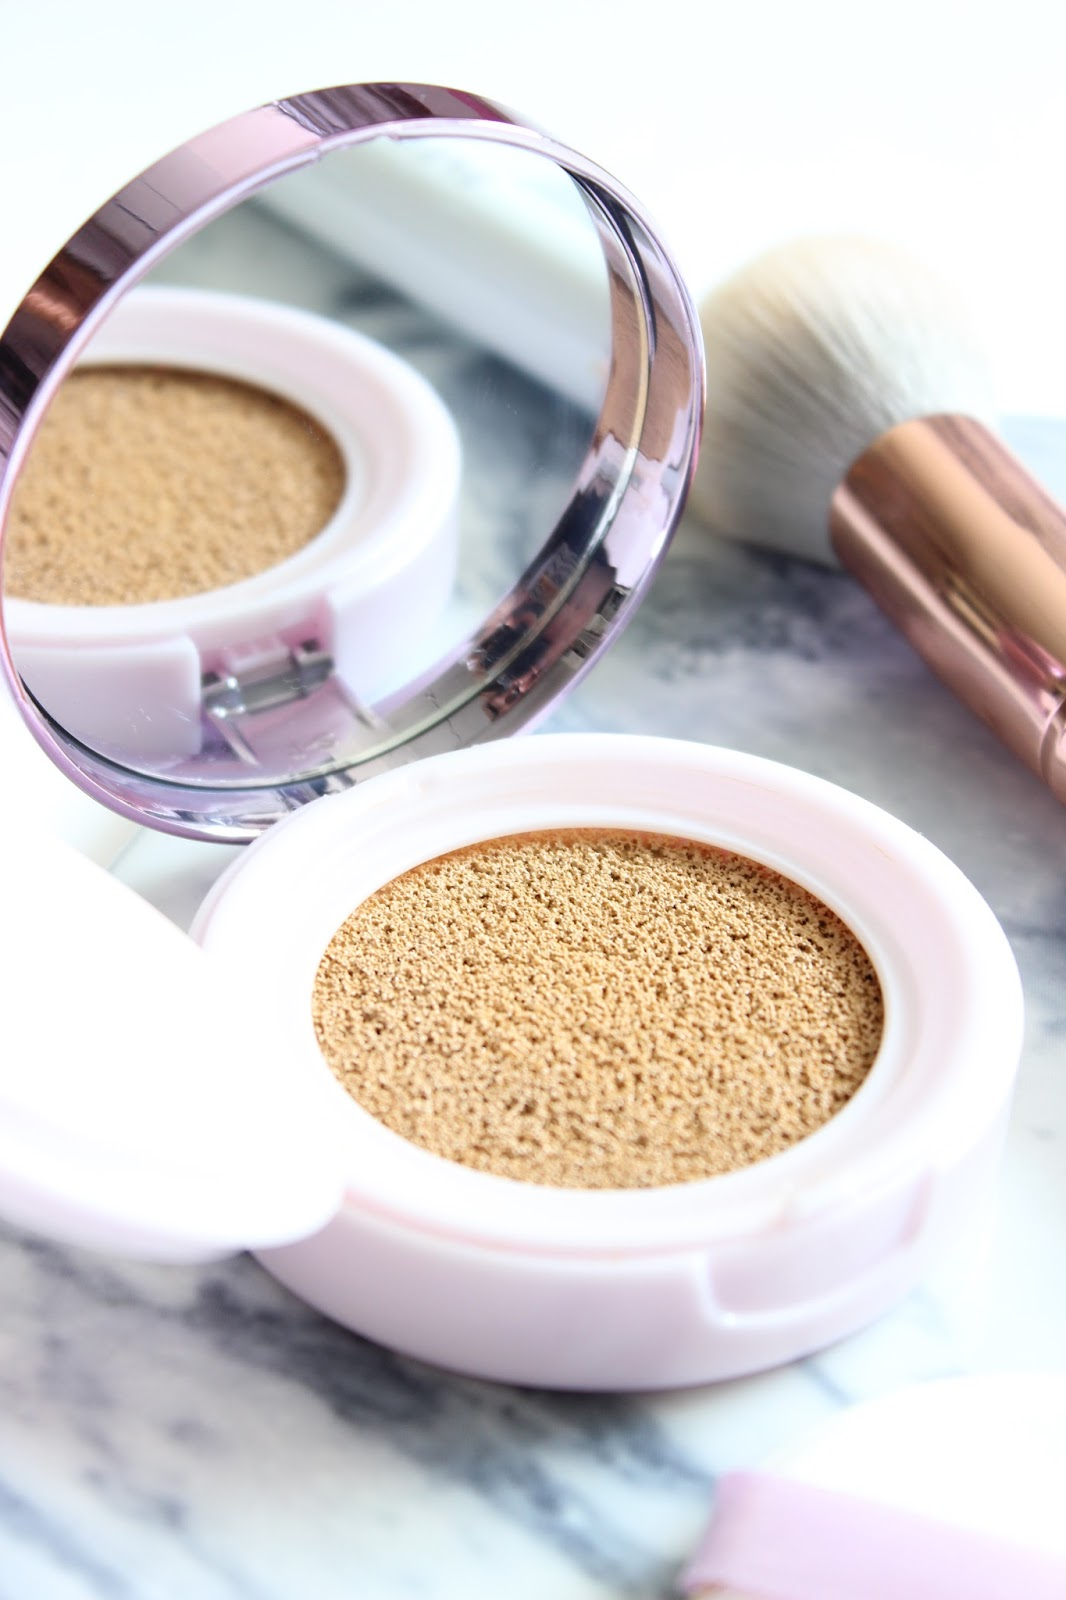 L'Oréal Nude Magique Cushion Foundation: An In-Depth Review